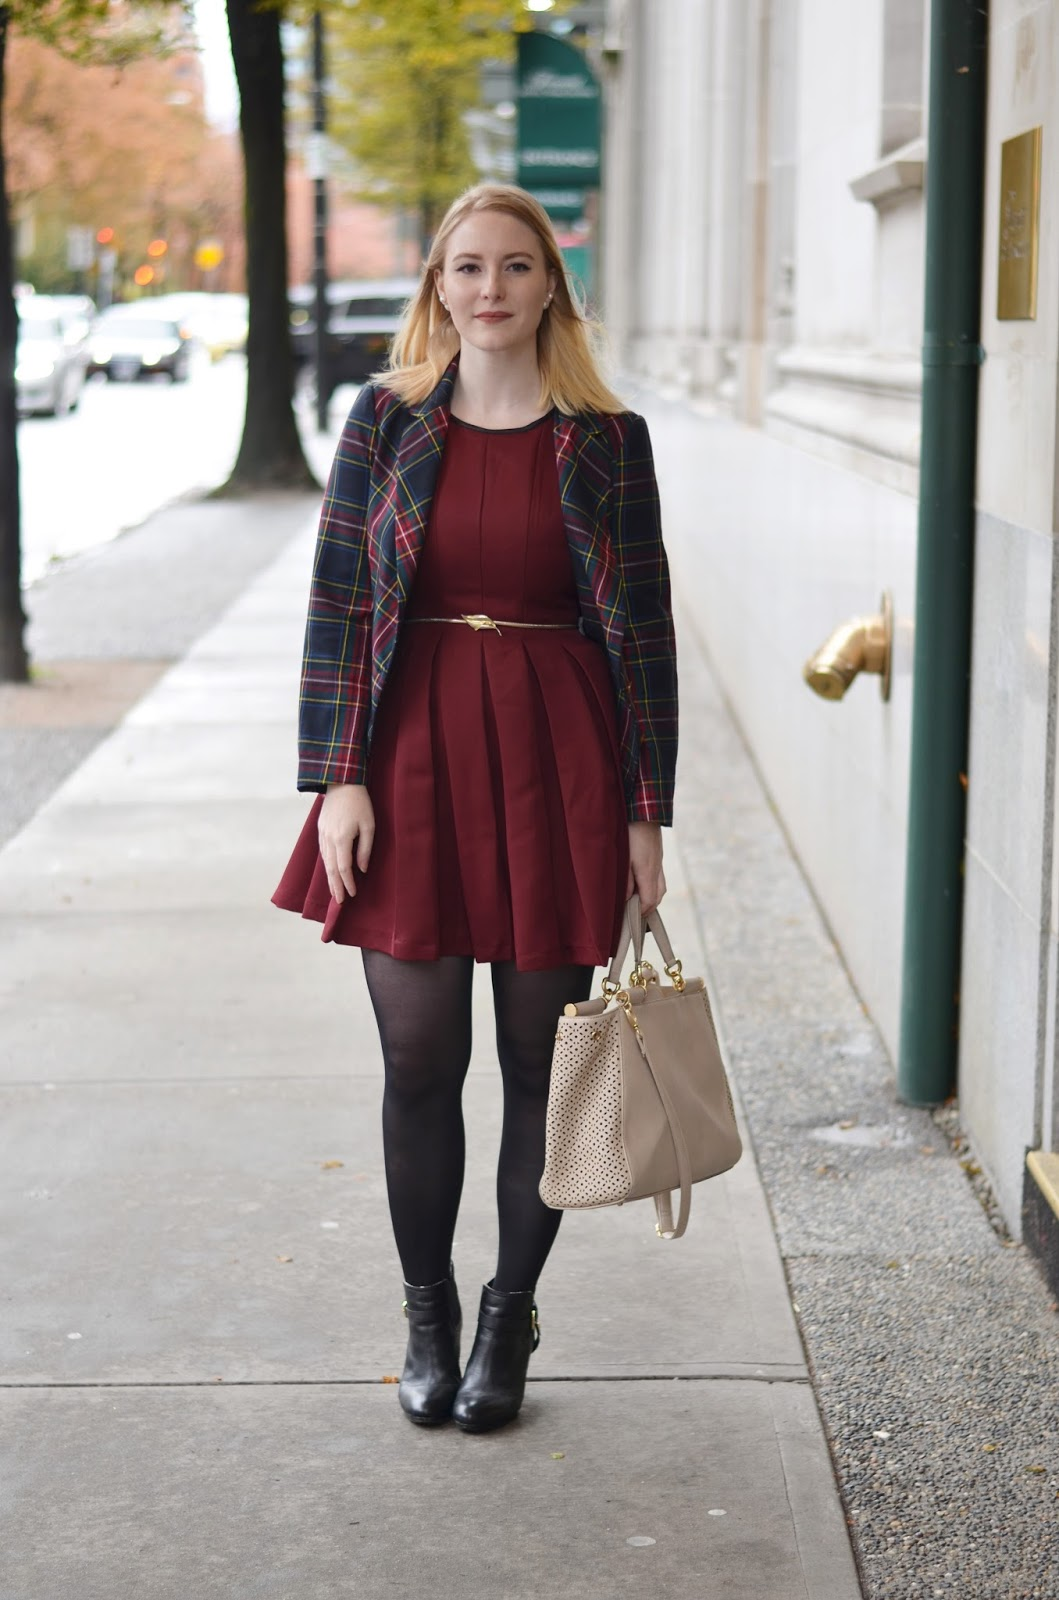 High Tea Dress for Winter